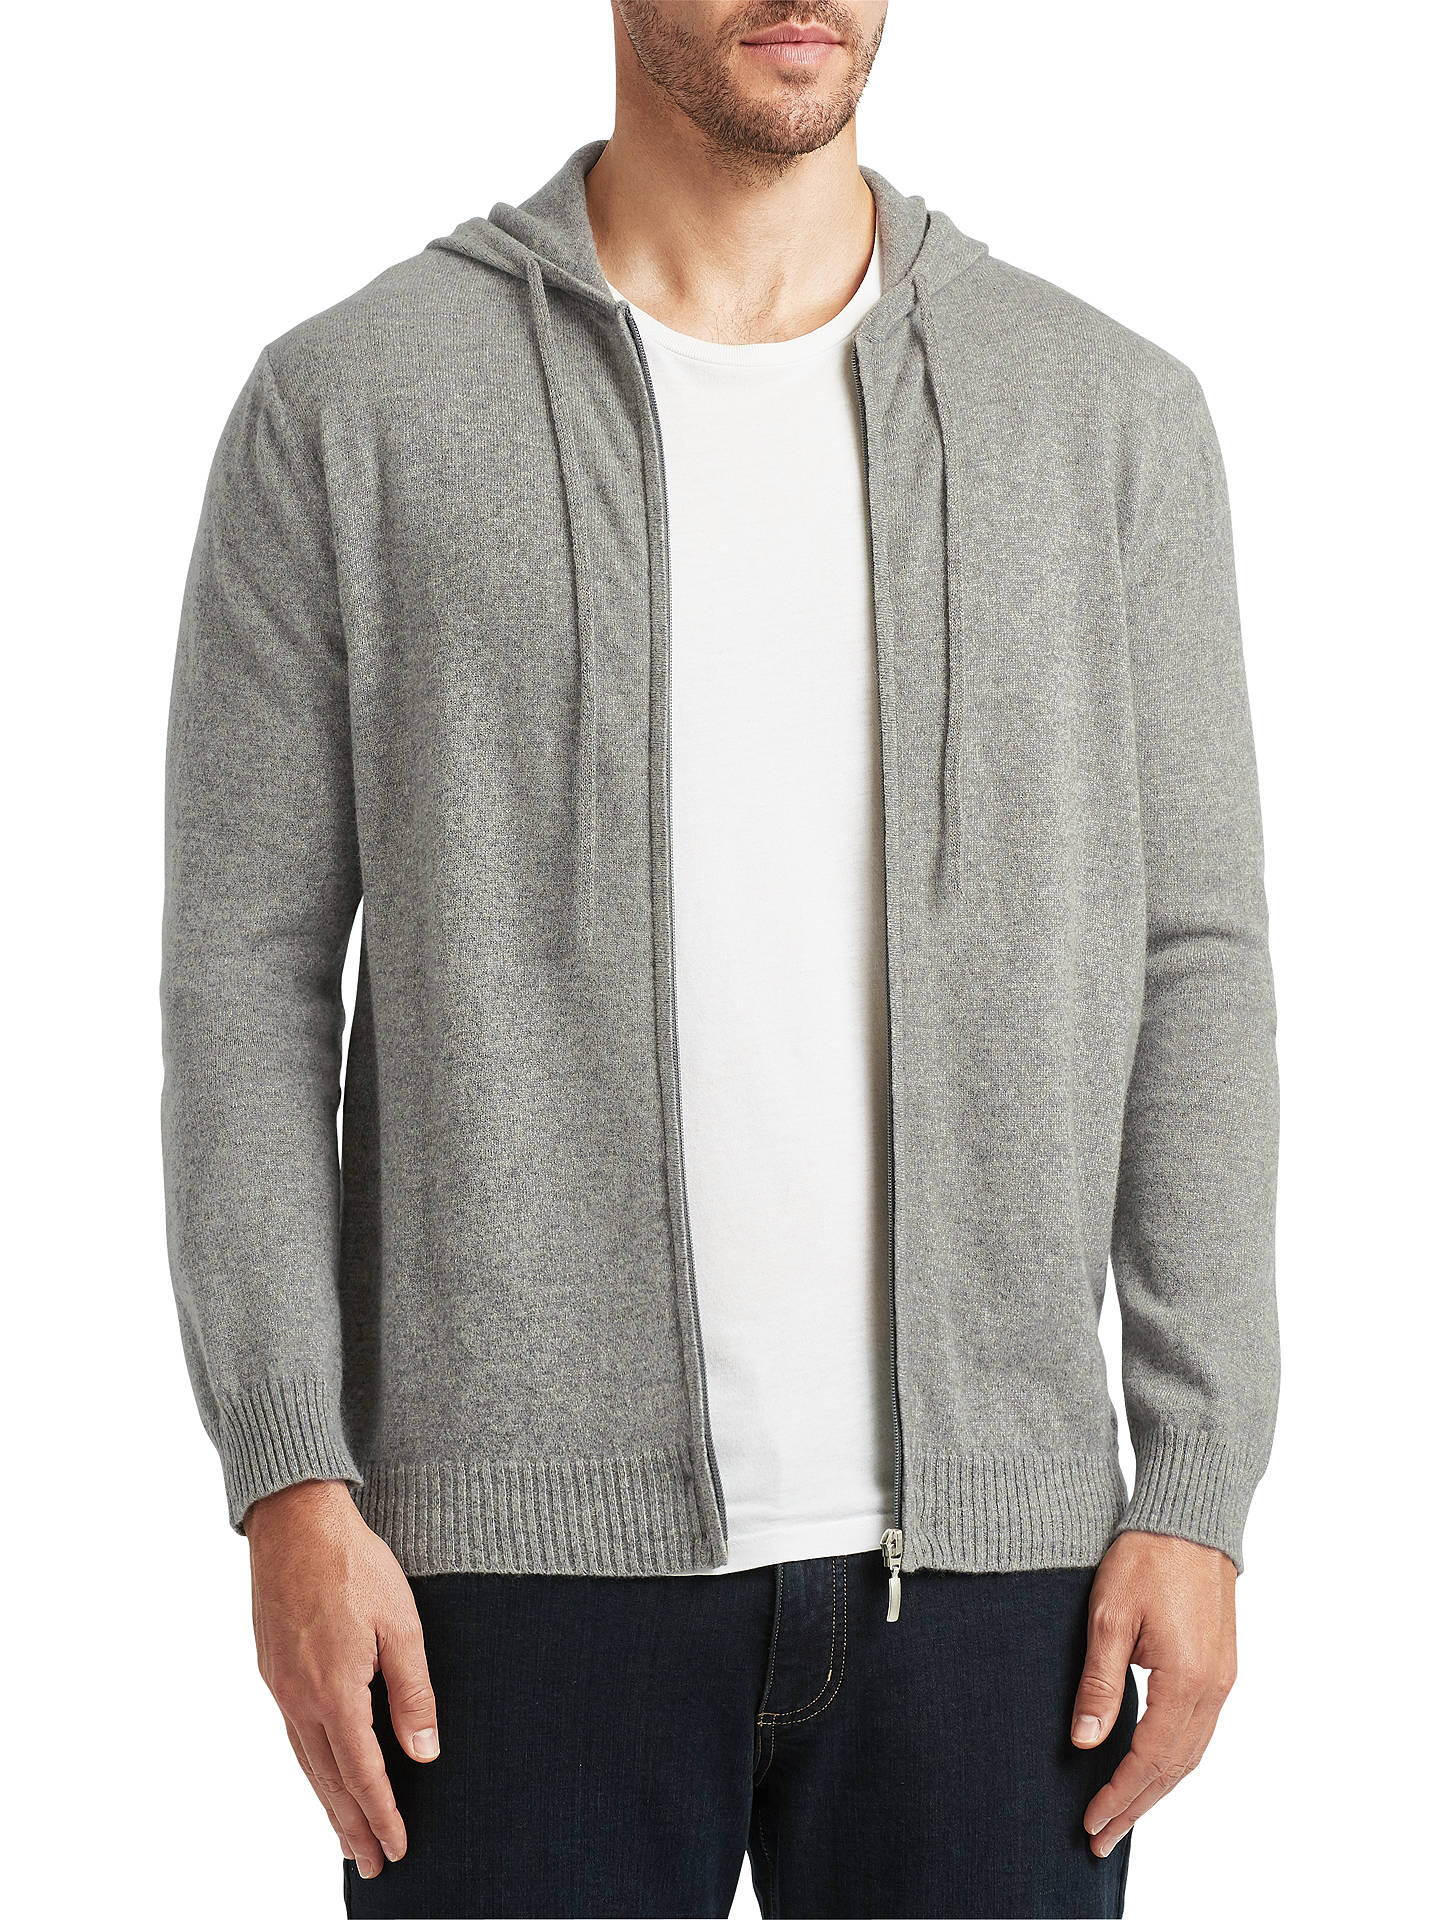 BuyJohn Lewis Made in Italy Premium Cashmere Hoodie, Grey, S Online at johnlewis.com